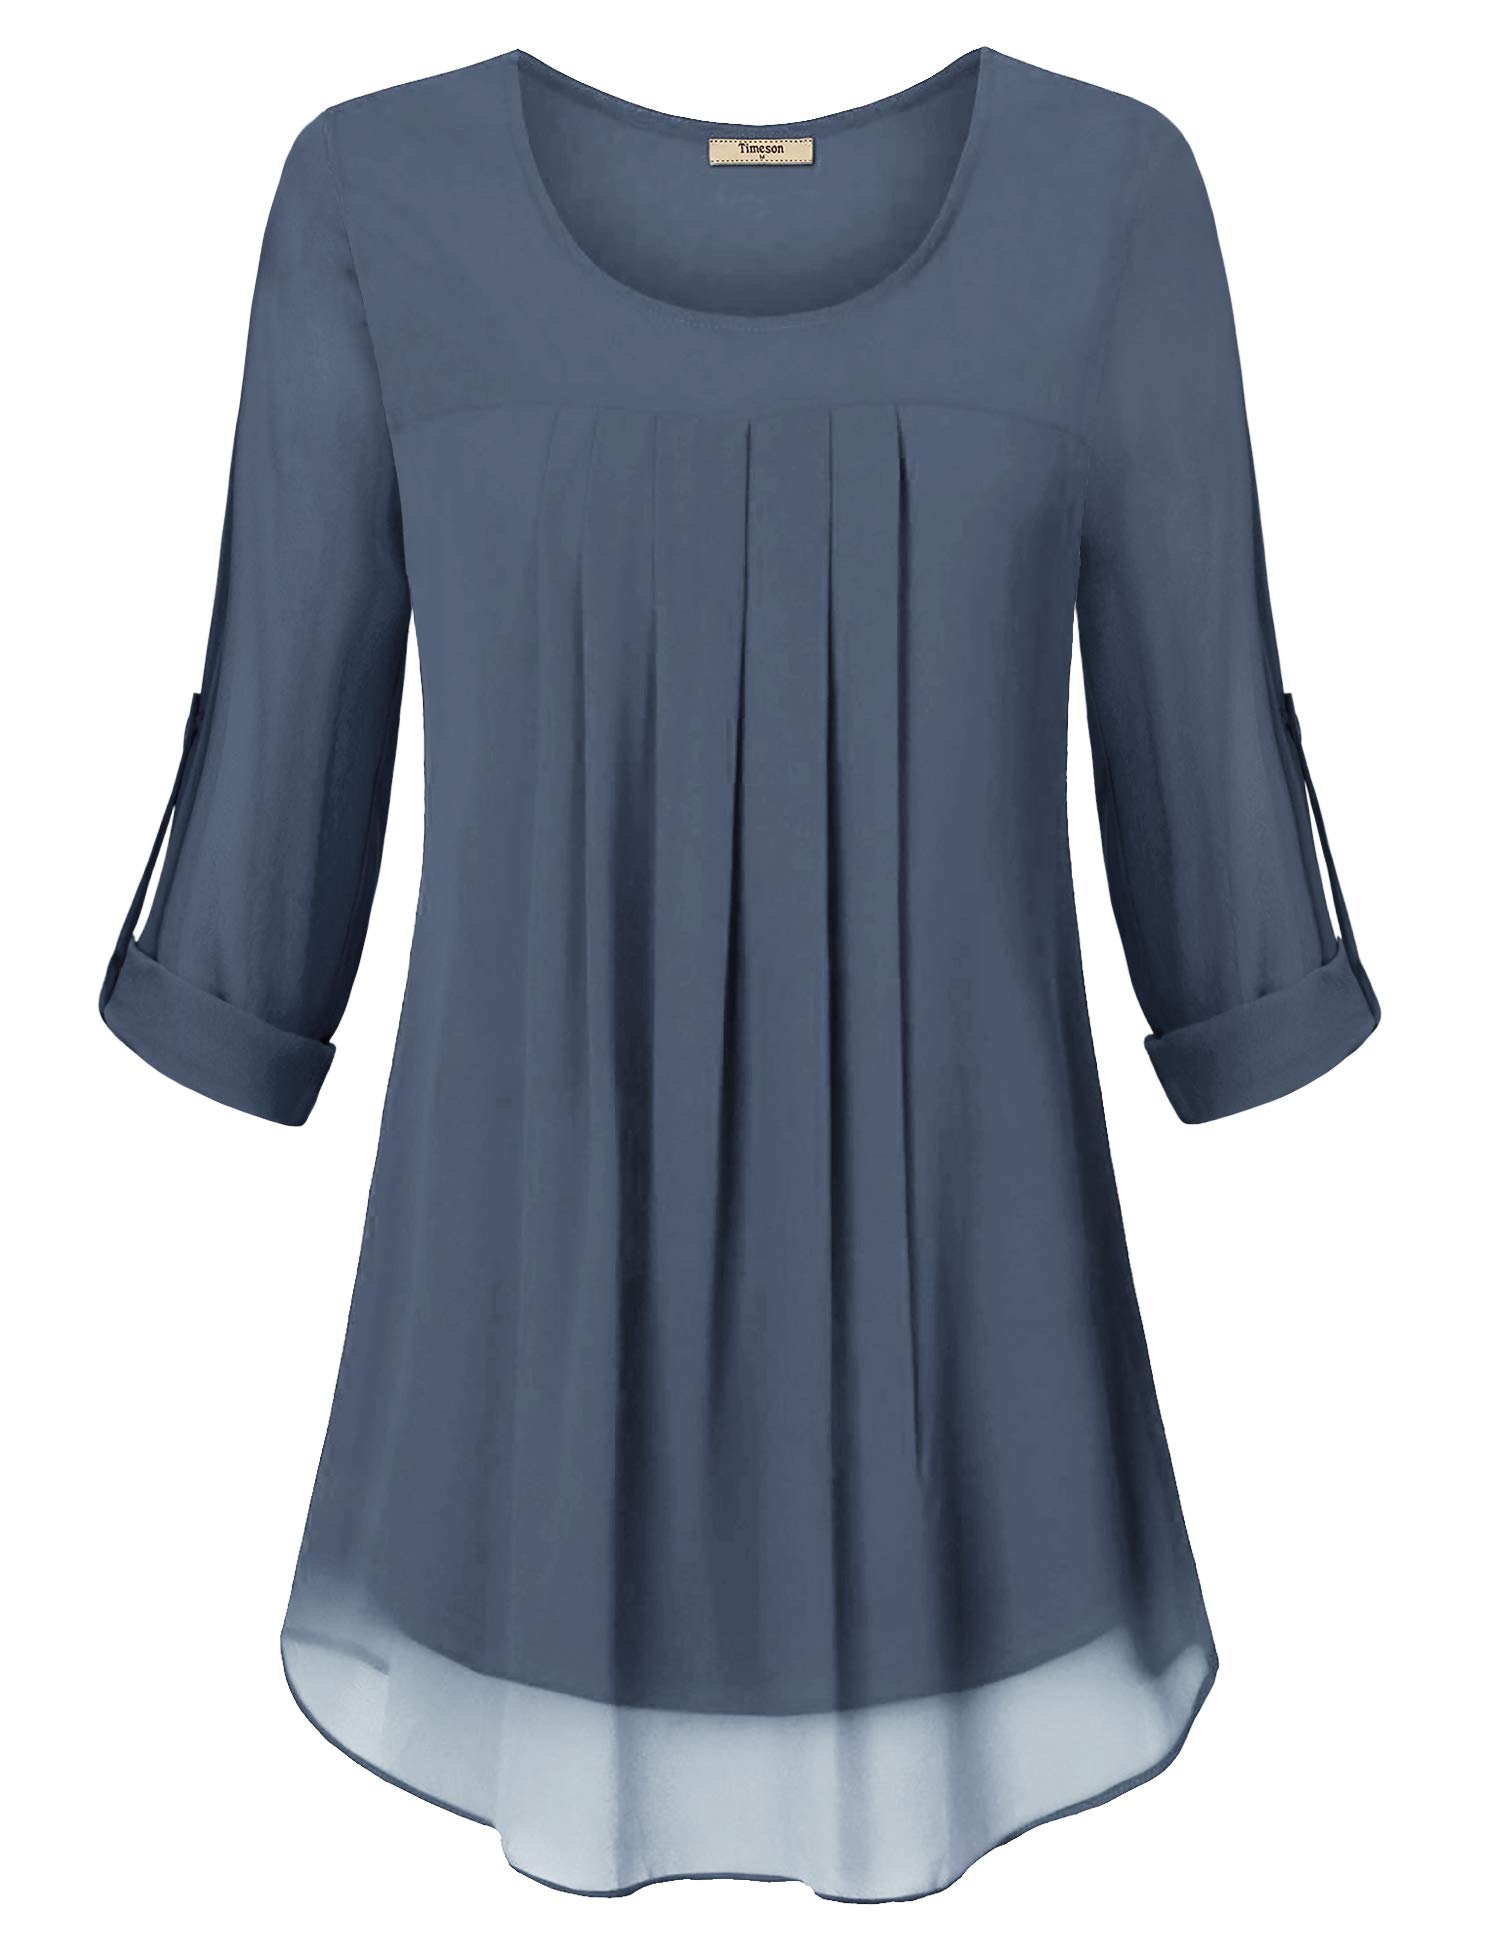 Timeson Womens Flowy Blouses, Ladies Dressy Blouse Scoop Neck Pleated Top 3/4 Long Sleeve Dressy Tunics Chiffon Layers Swing Shirt Casual Fit Tee Tops for Business Work Wear Blue Gray XX-Large